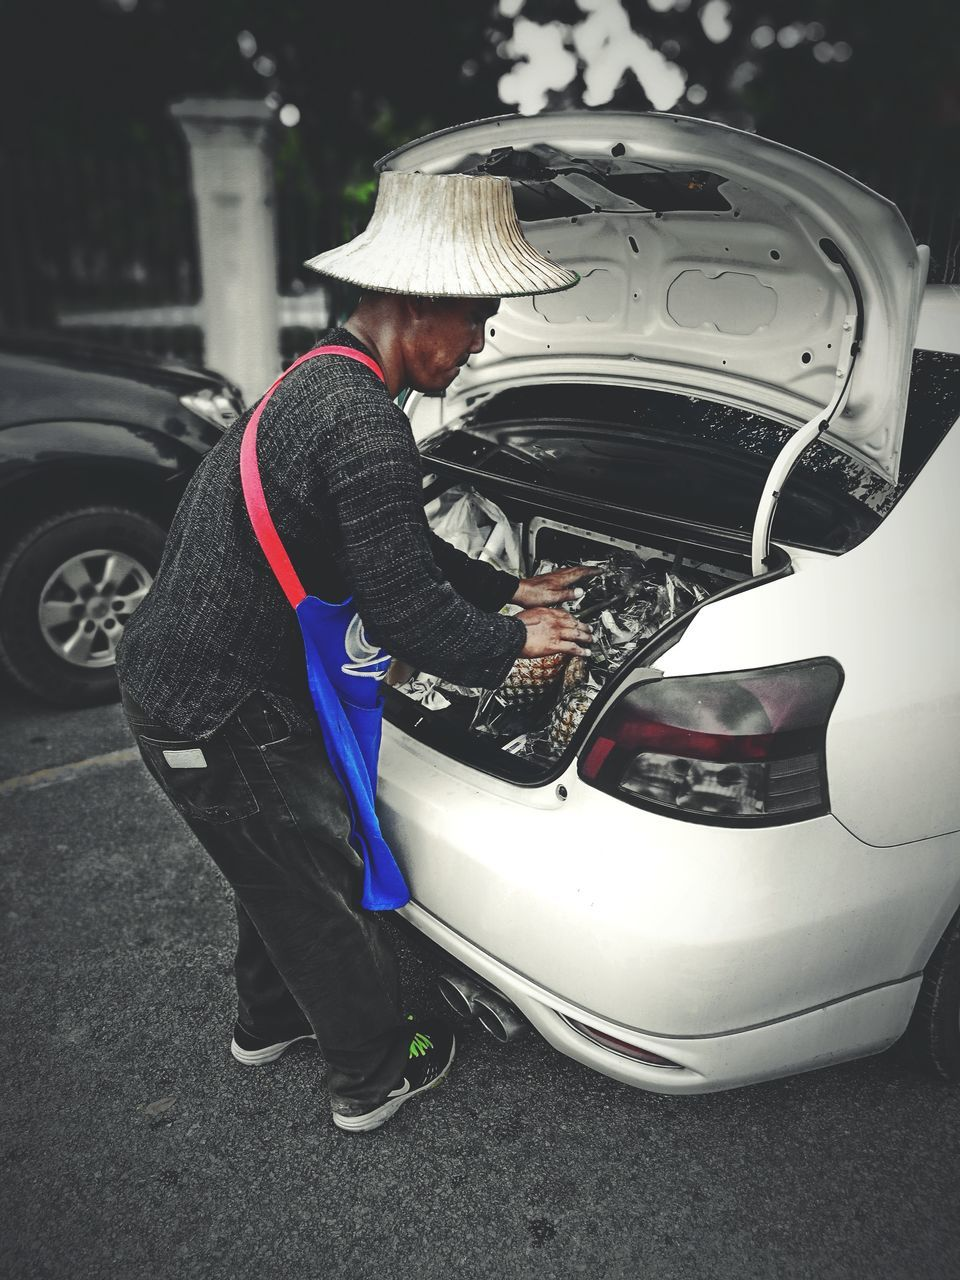 car, transportation, land vehicle, mode of transport, real people, men, one person, full length, repairing, mechanic, uniform, outdoors, day, auto repair shop, occupation, young adult, adult, people